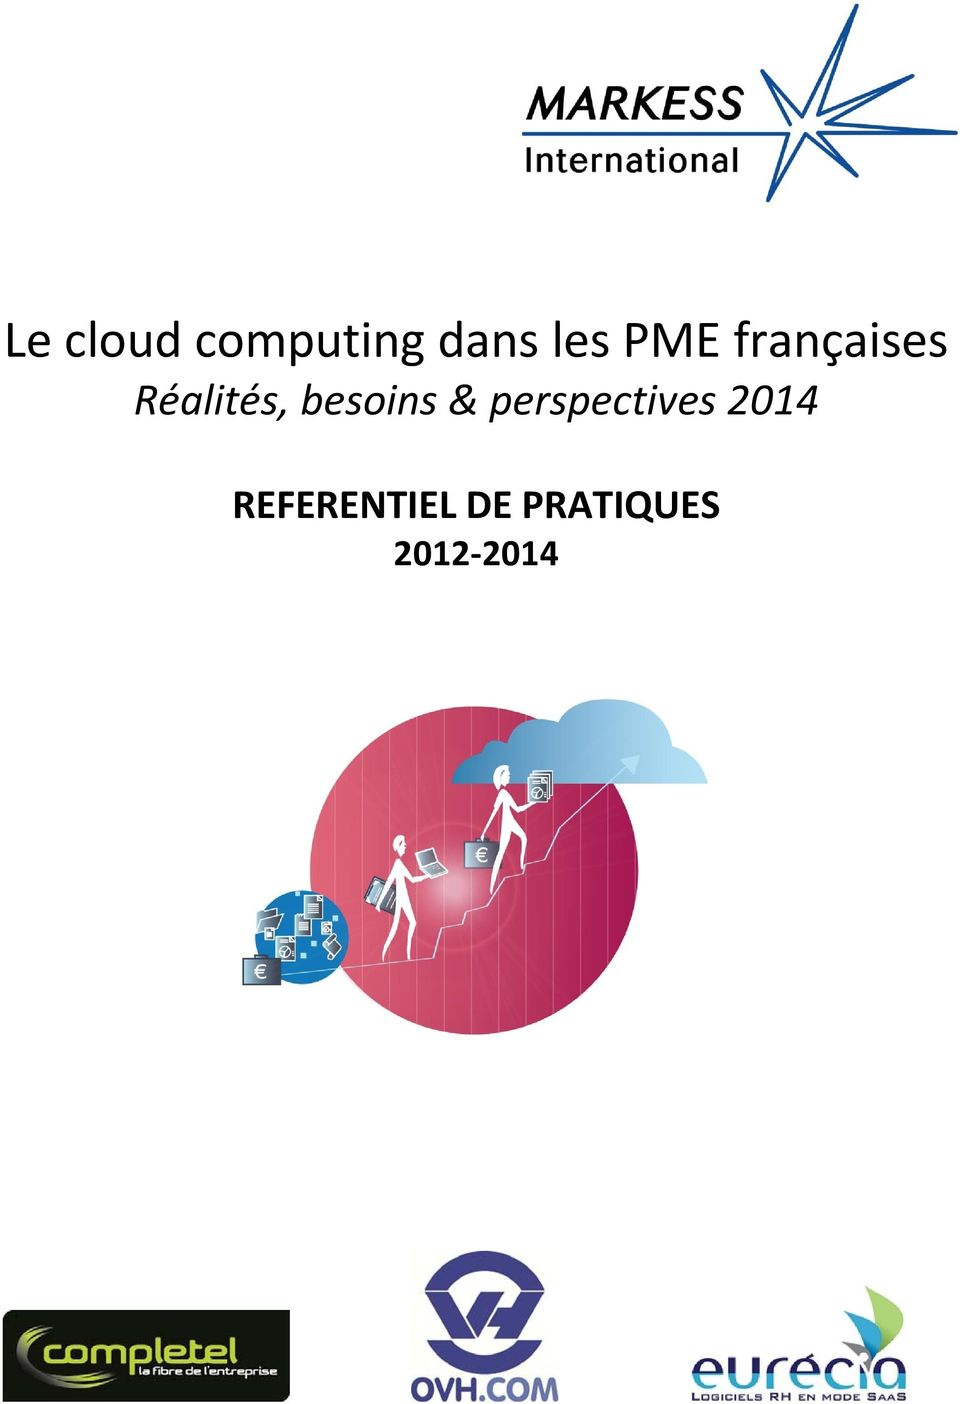 besoins & perspectives 2014